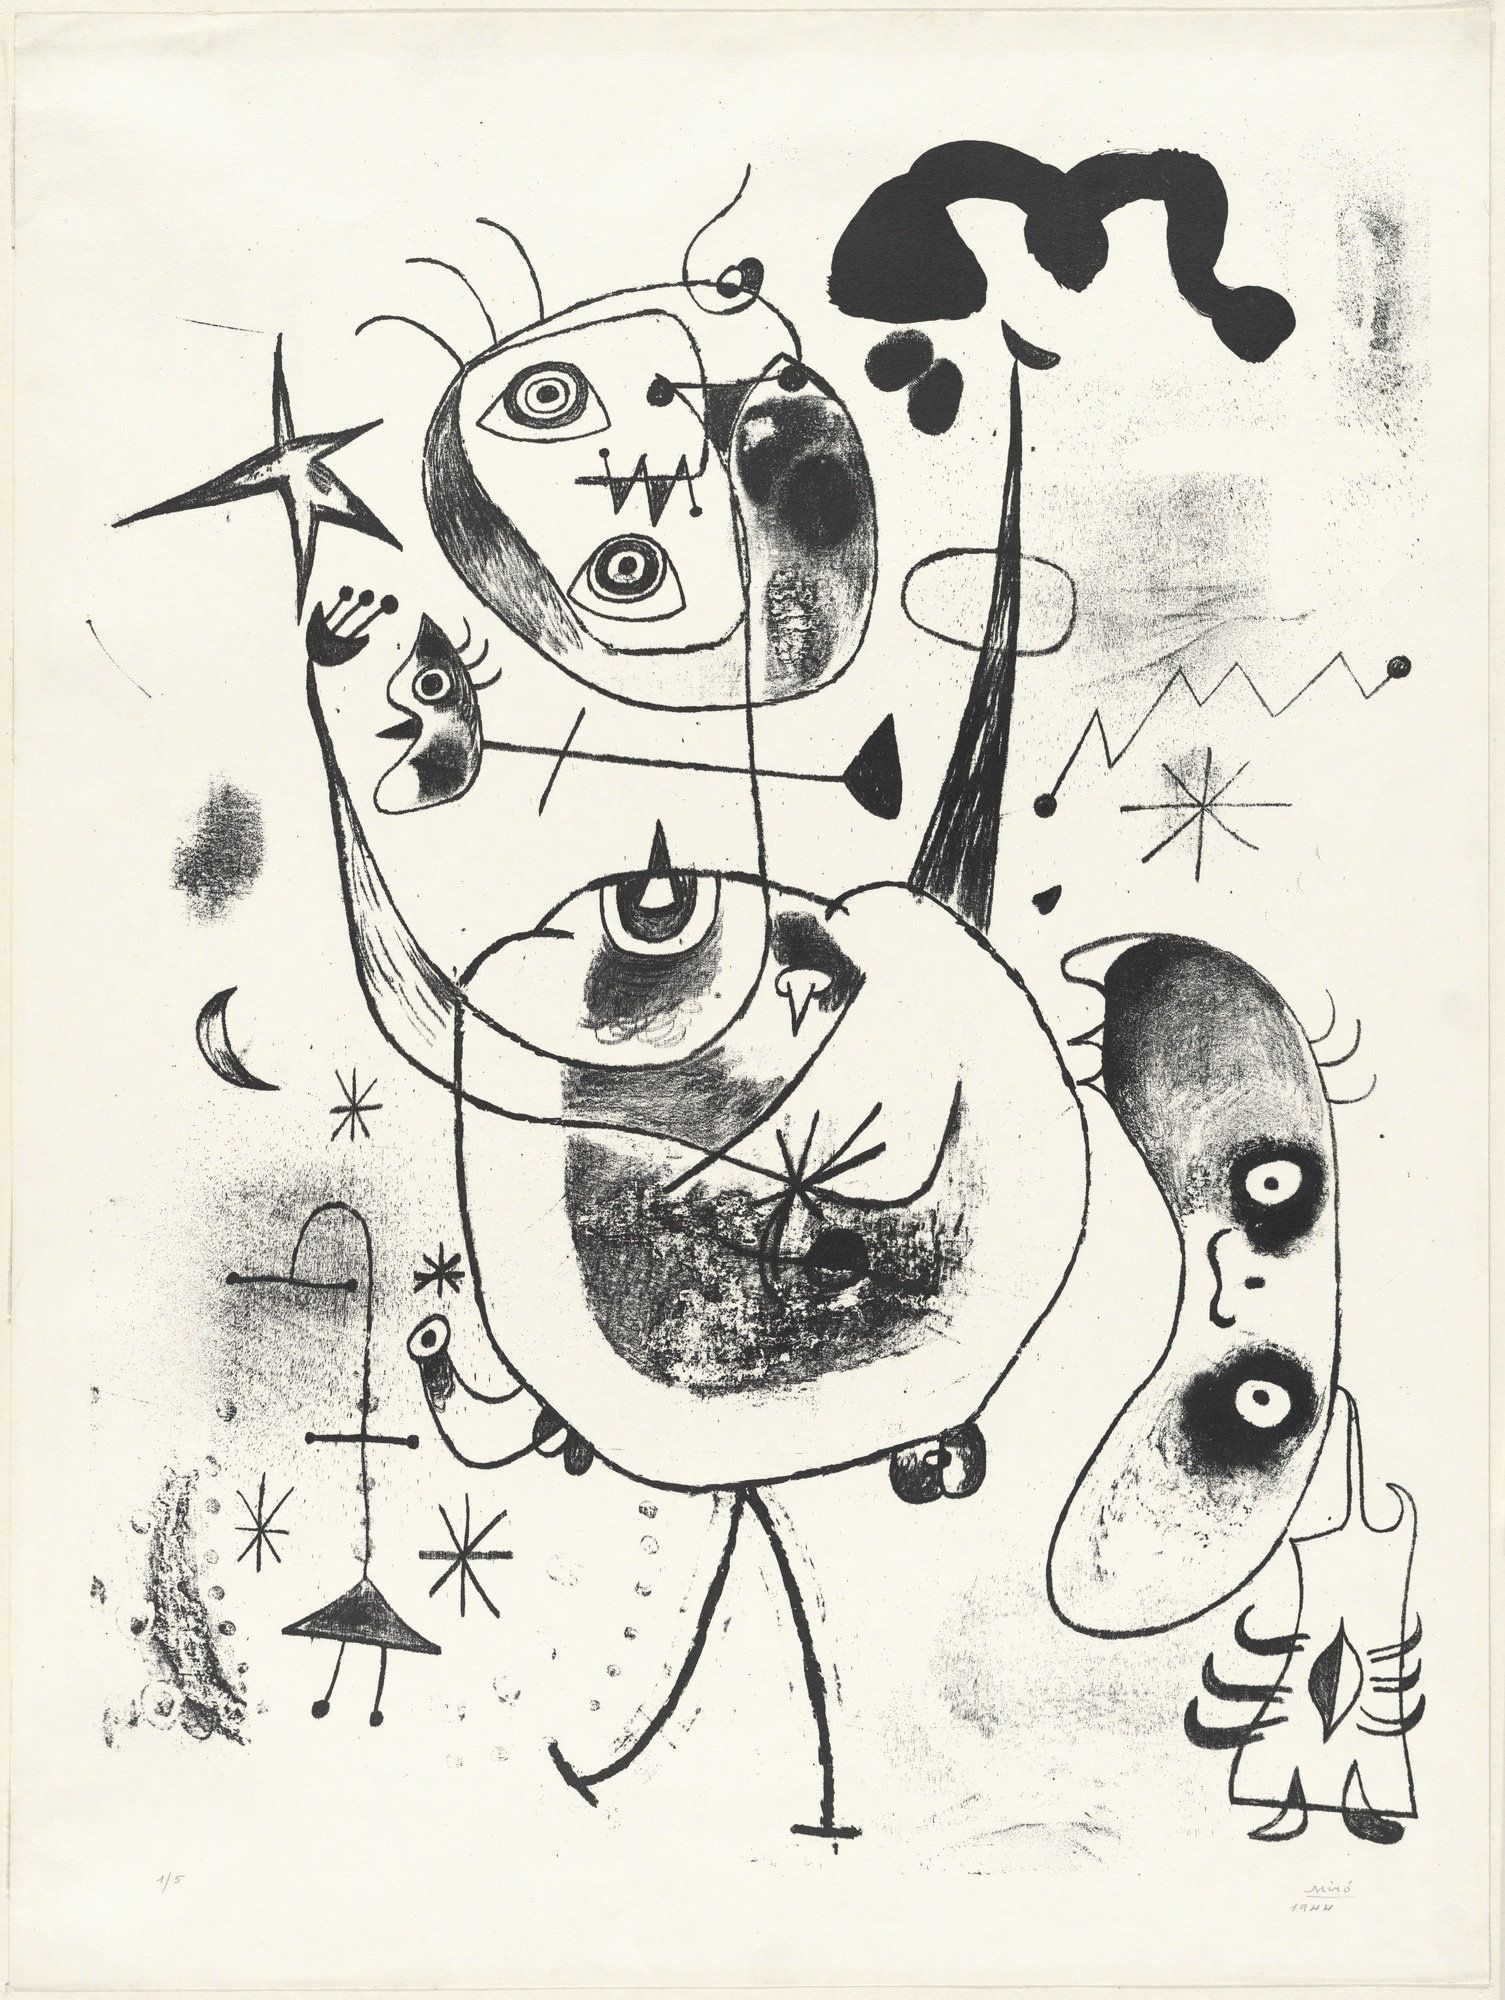 Elements Of Art Line Quizlet : Joan miró plate xxiii from the barcelona series